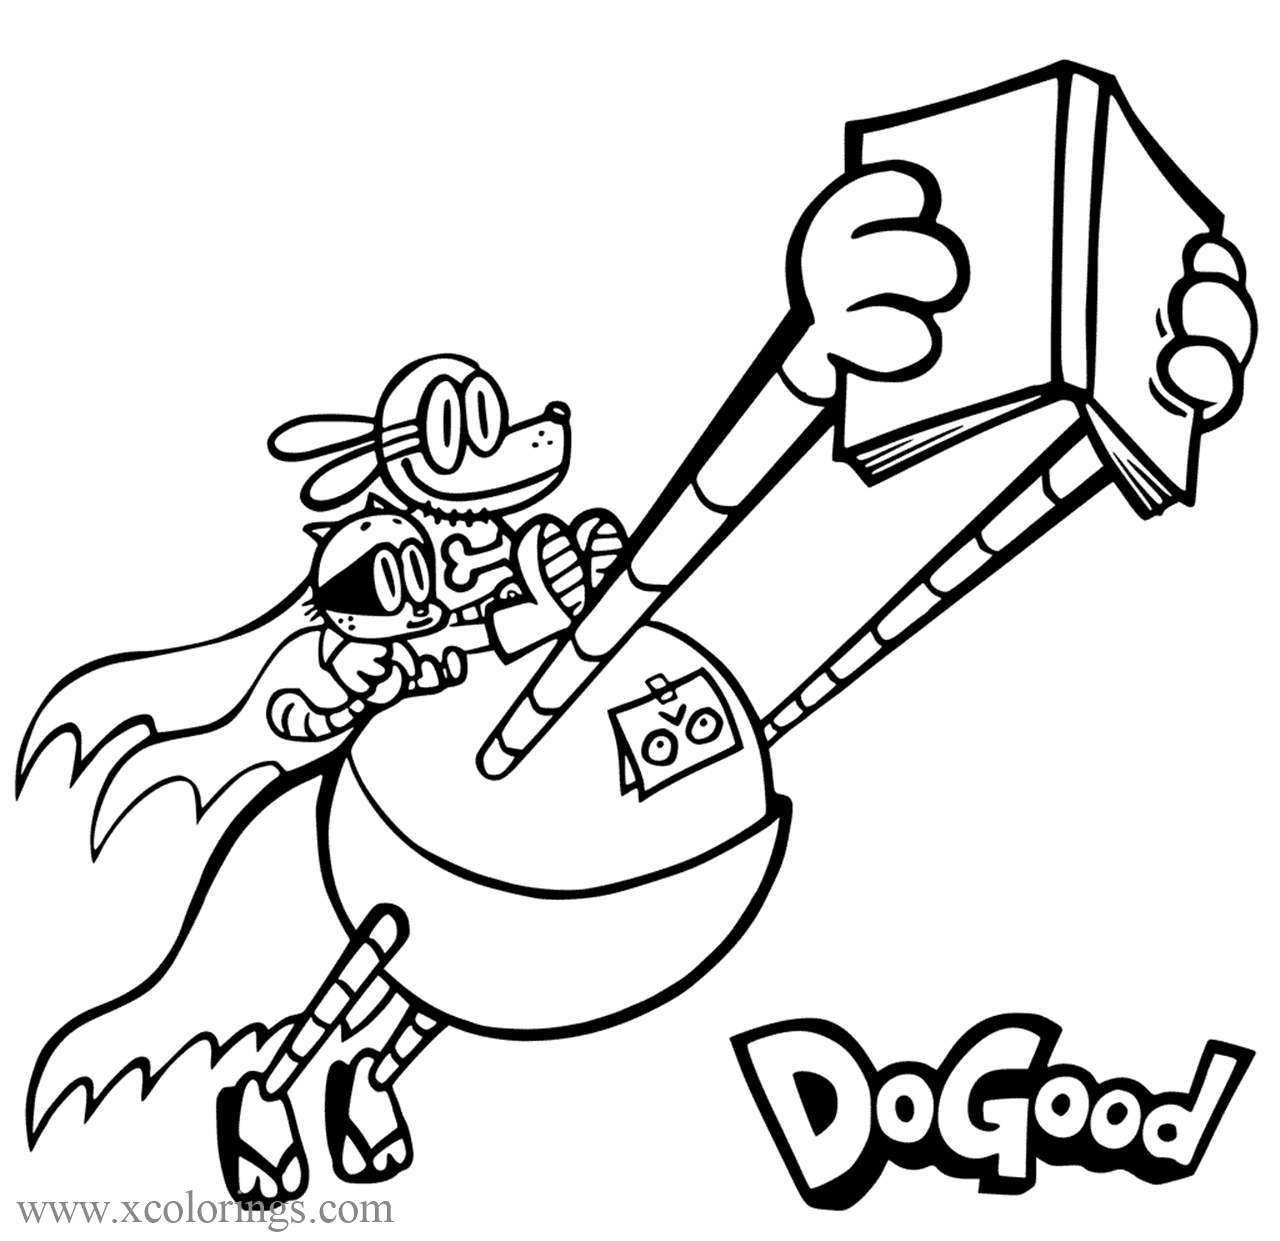 Dog Man Coloring Pages Archives - XColorings